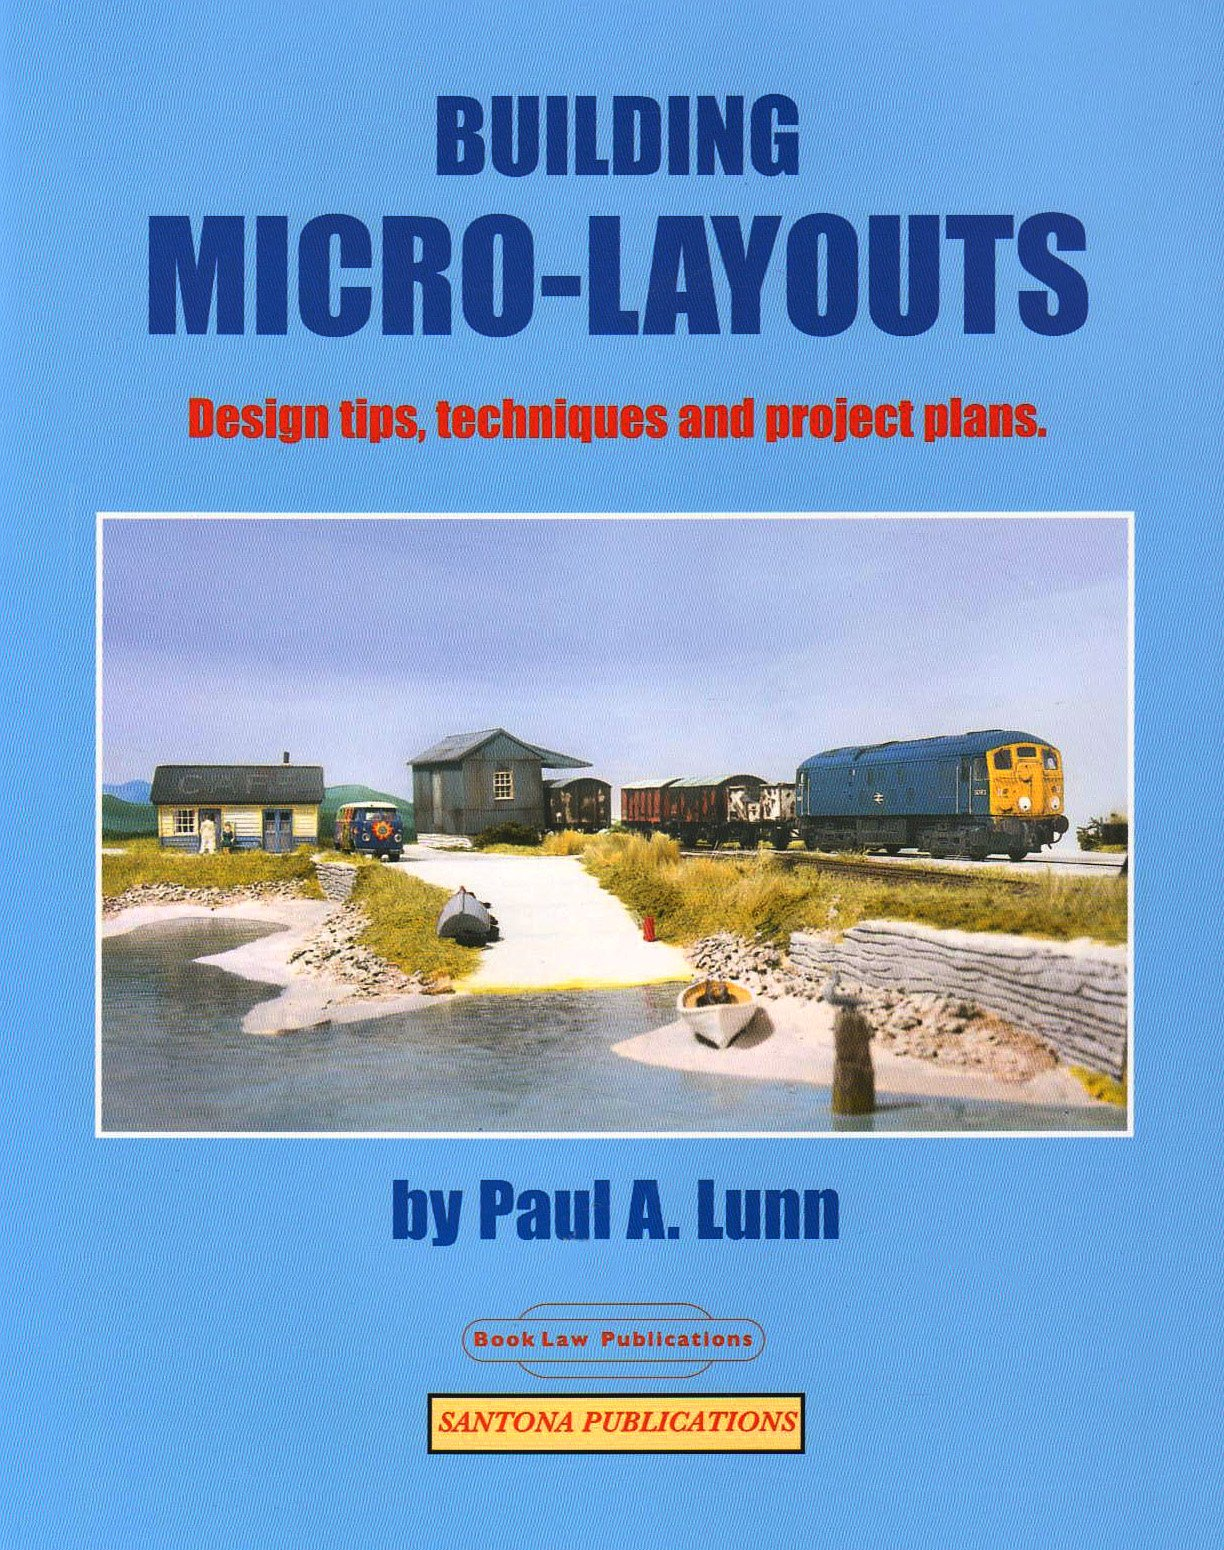 Building Micro-Layouts: Design Tips, Techniques and Project Plans